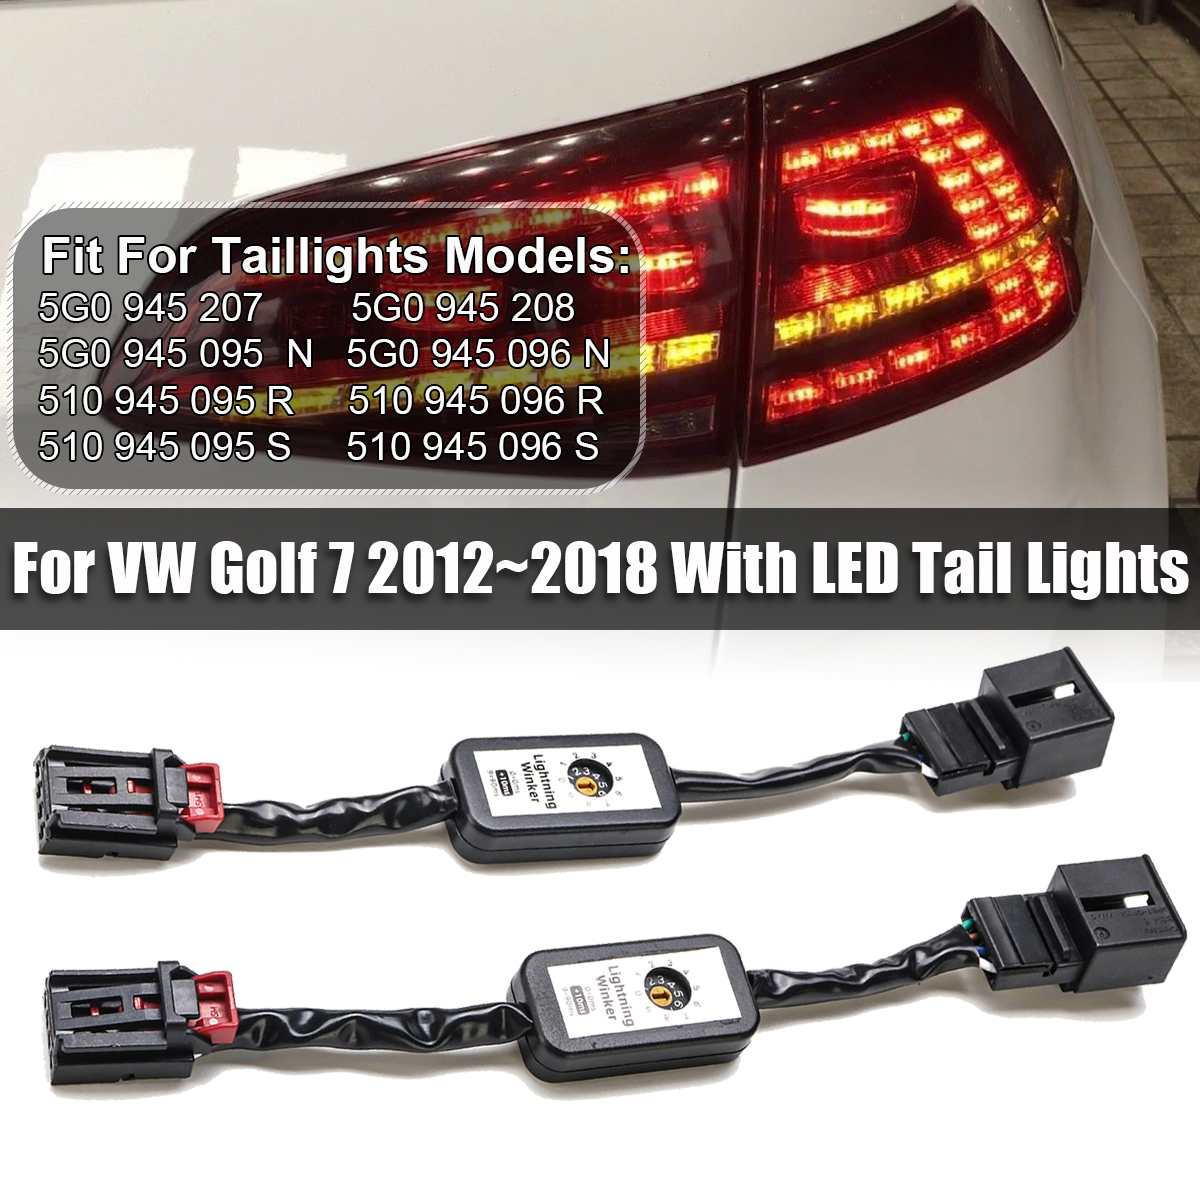 2Pcs Black Dynamic Turn Signal Indicator LED Taillight  Add-on Module Cable Wire Harness For VW Golf 7 Left & Right Tail Light